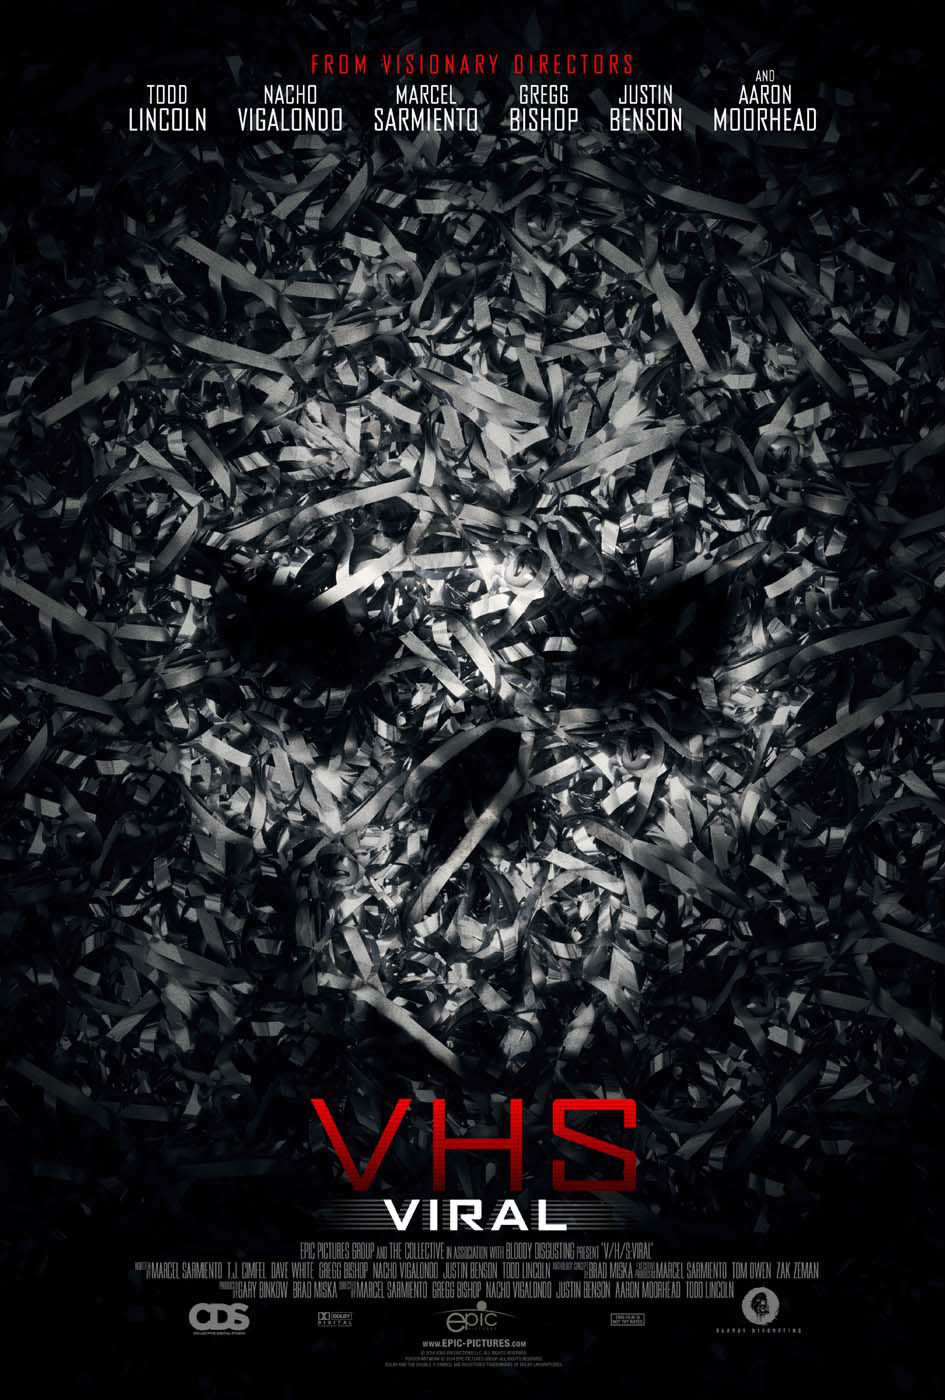 vhs viral poster V/H/S Viral review (2014)